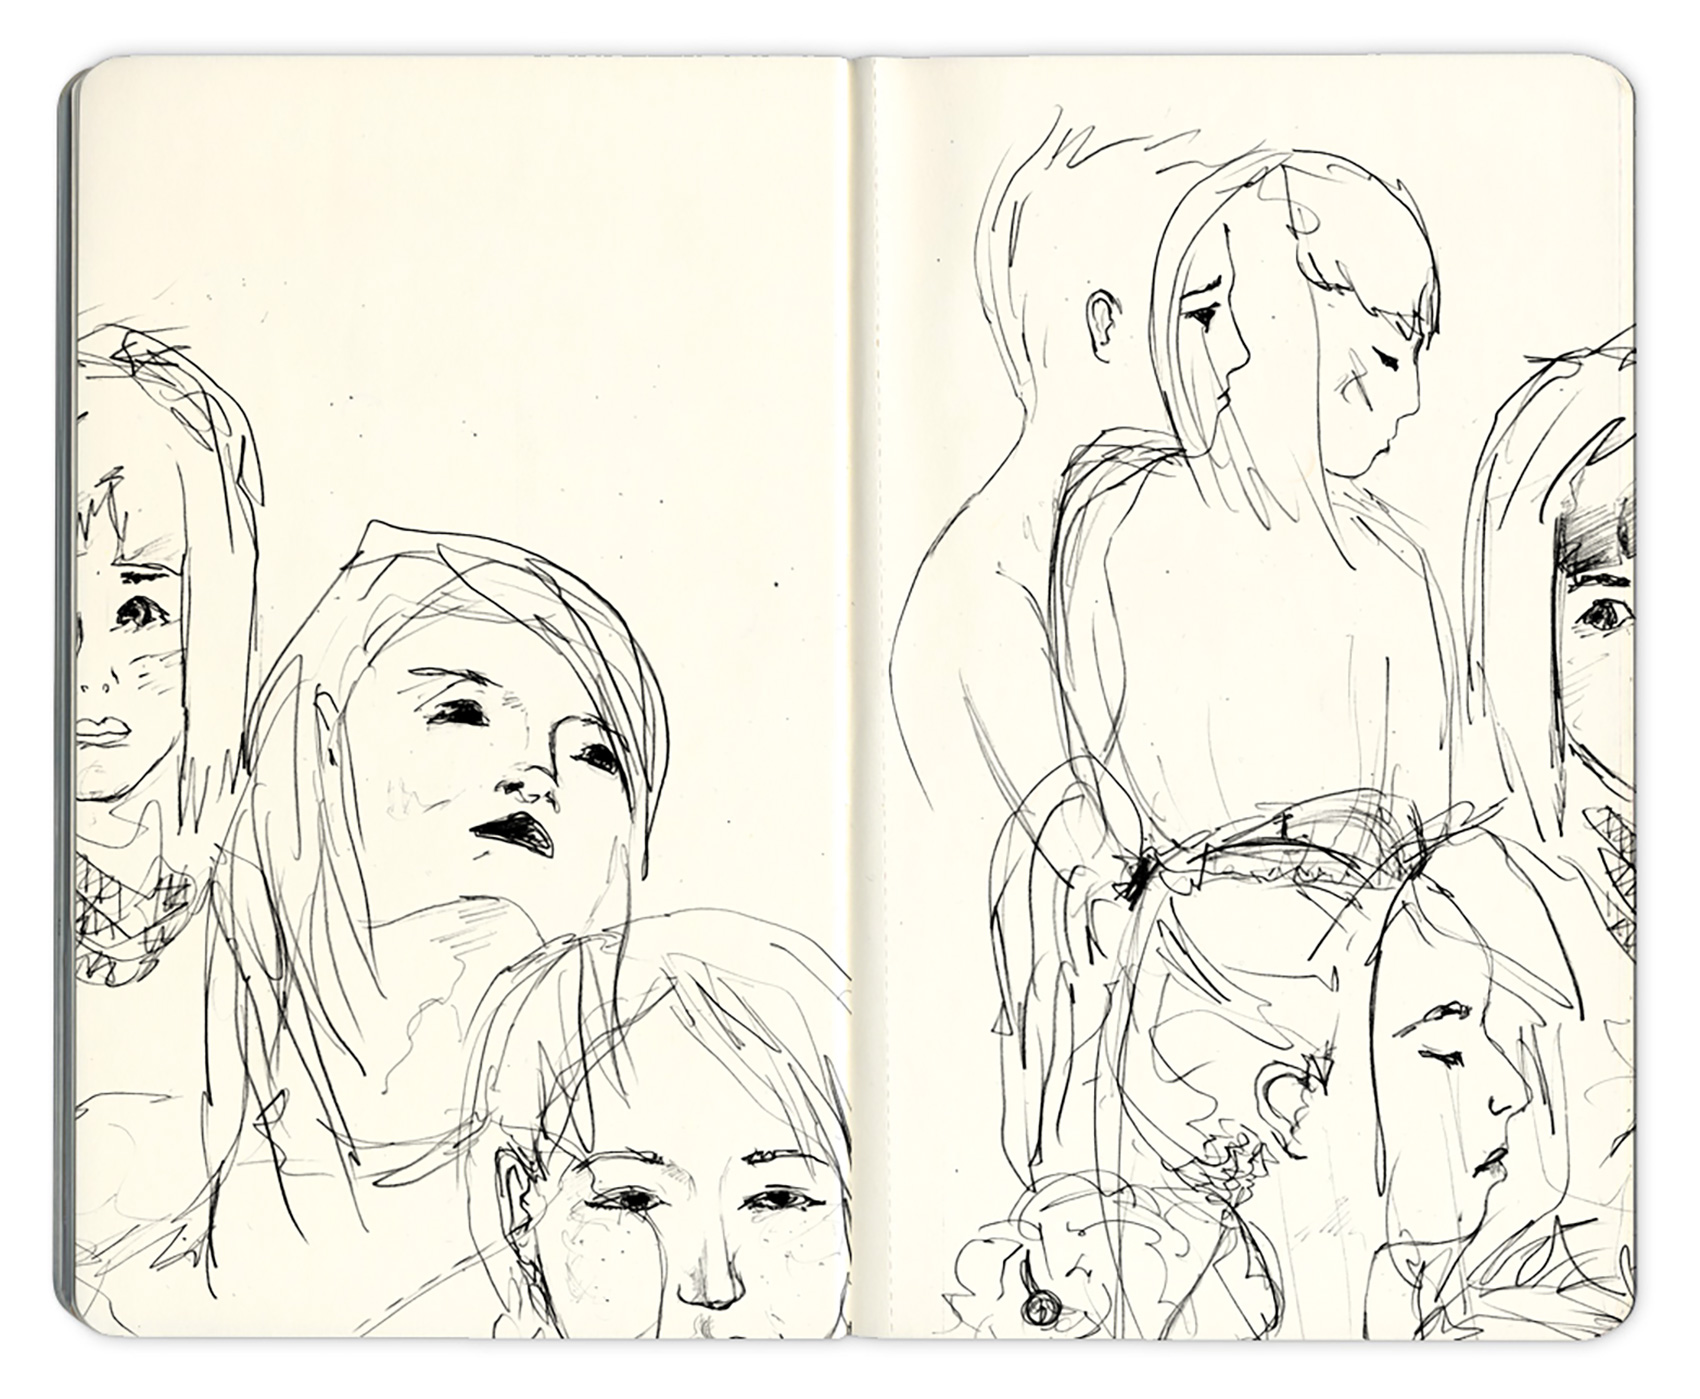 rough pencil portrait sketches